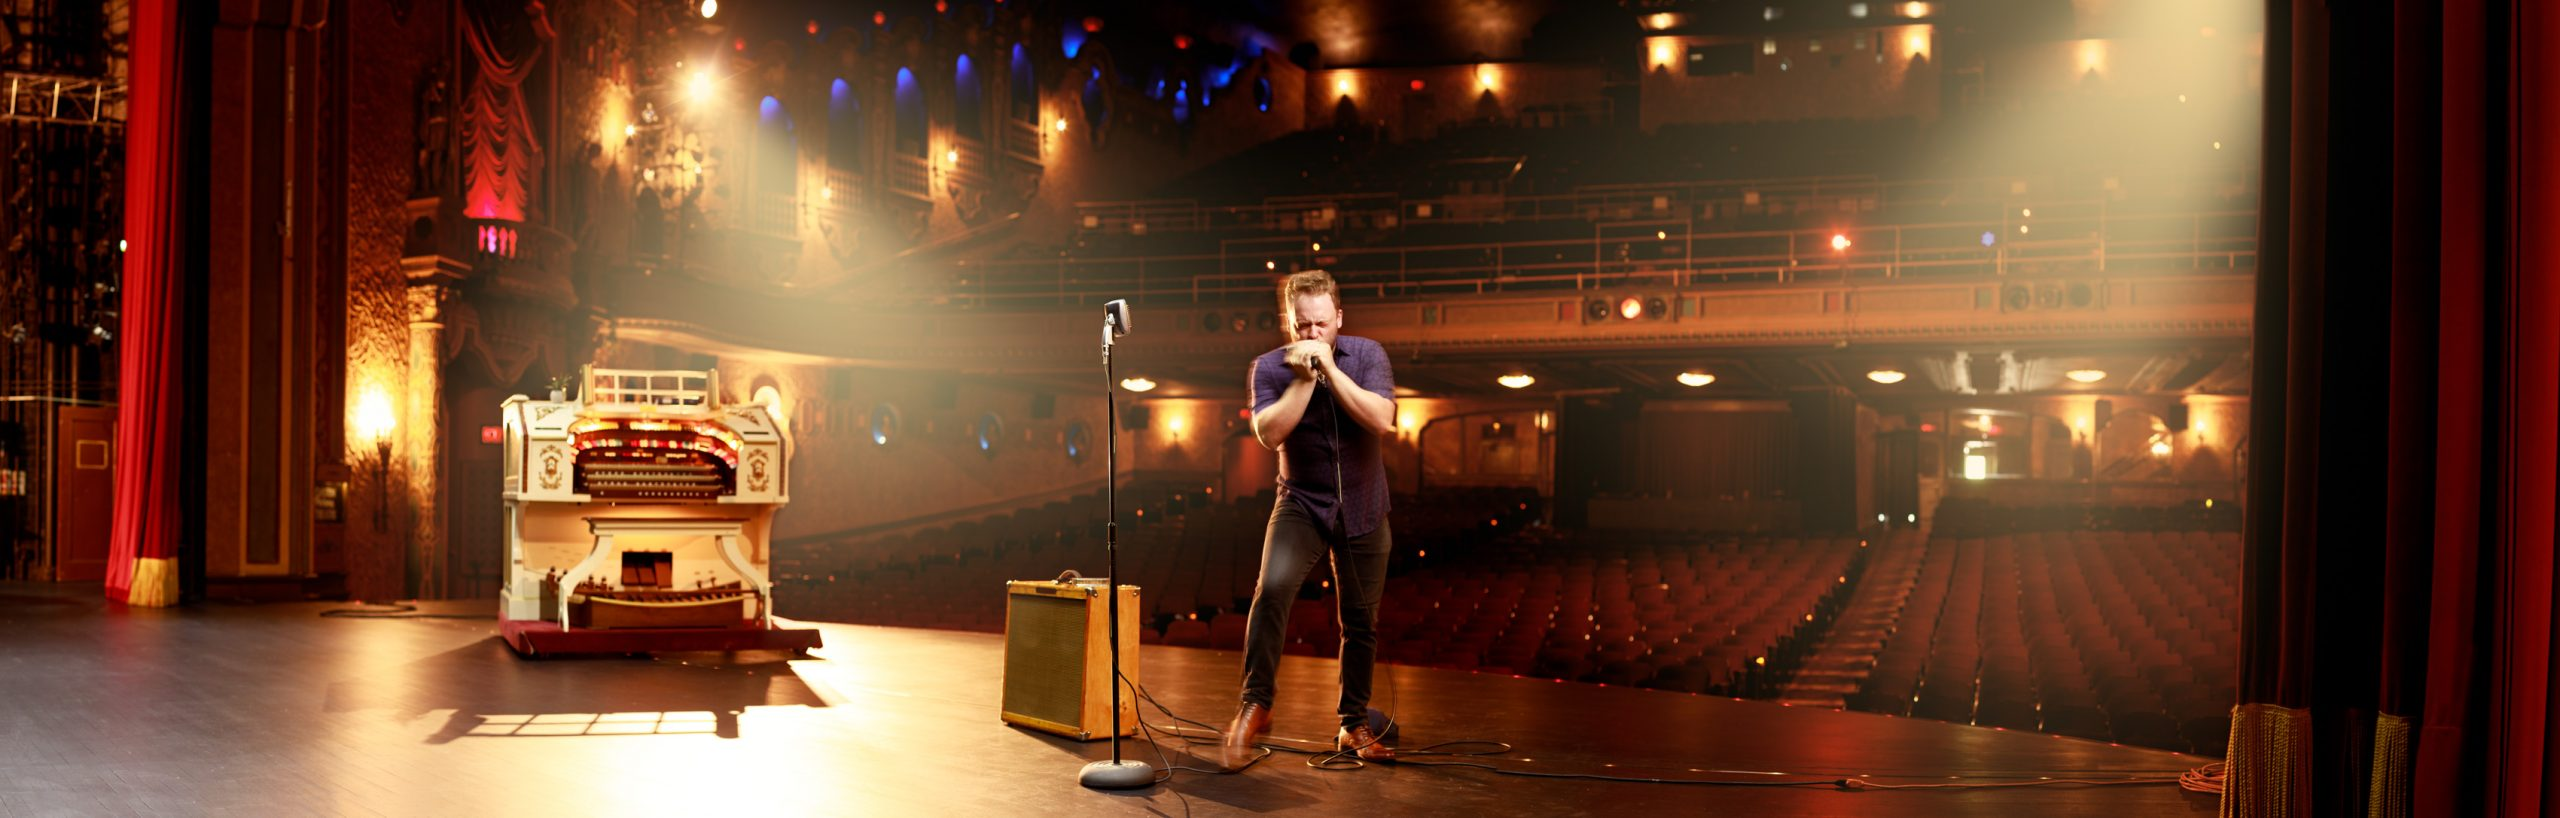 Jake Friel at the Canton Palace Theater - Commercial Portrait Photography